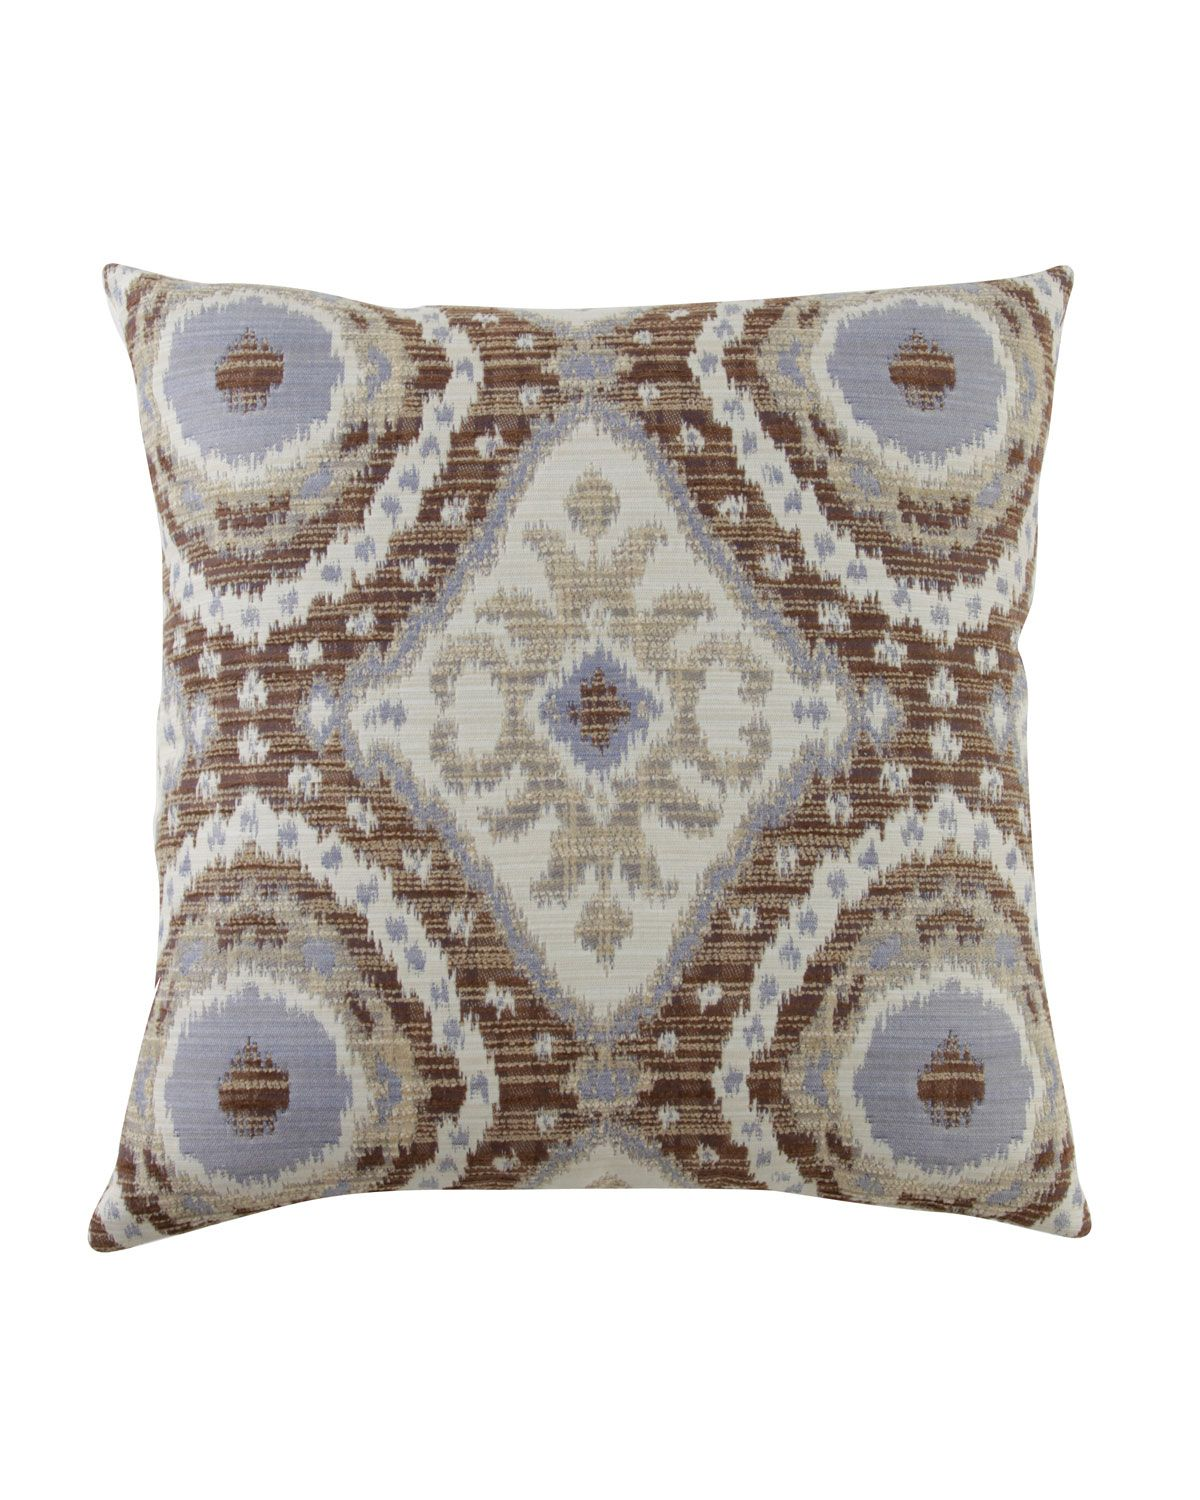 Tierra Ikat Outdoor Pillow By Elaine Smith At Horchow.